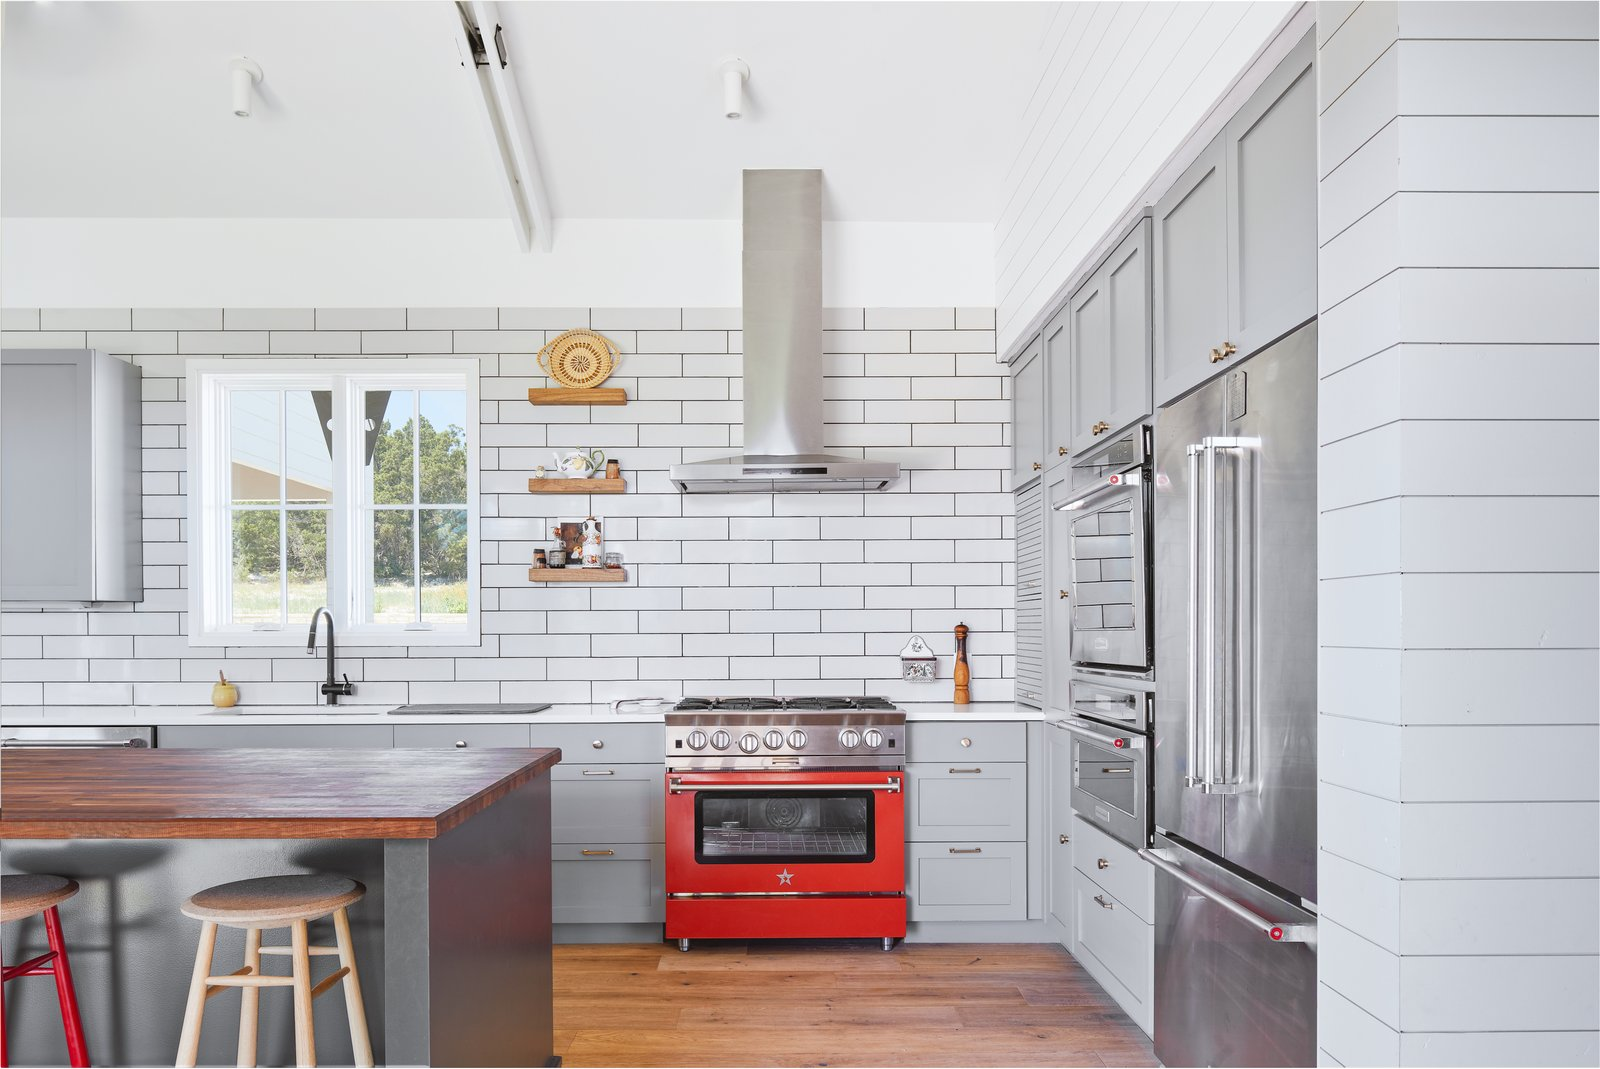 Kitchen, Wall Oven, Refrigerator, Wood, Range Hood, Range, Microwave, Quartzite, Wood, Medium Hardwood, Ceiling, Undermount, and Subway Tile The splash of red repeats itself in the kitchen oven.  Best Kitchen Wall Oven Ceiling Quartzite Microwave Photos from Interior Spaces